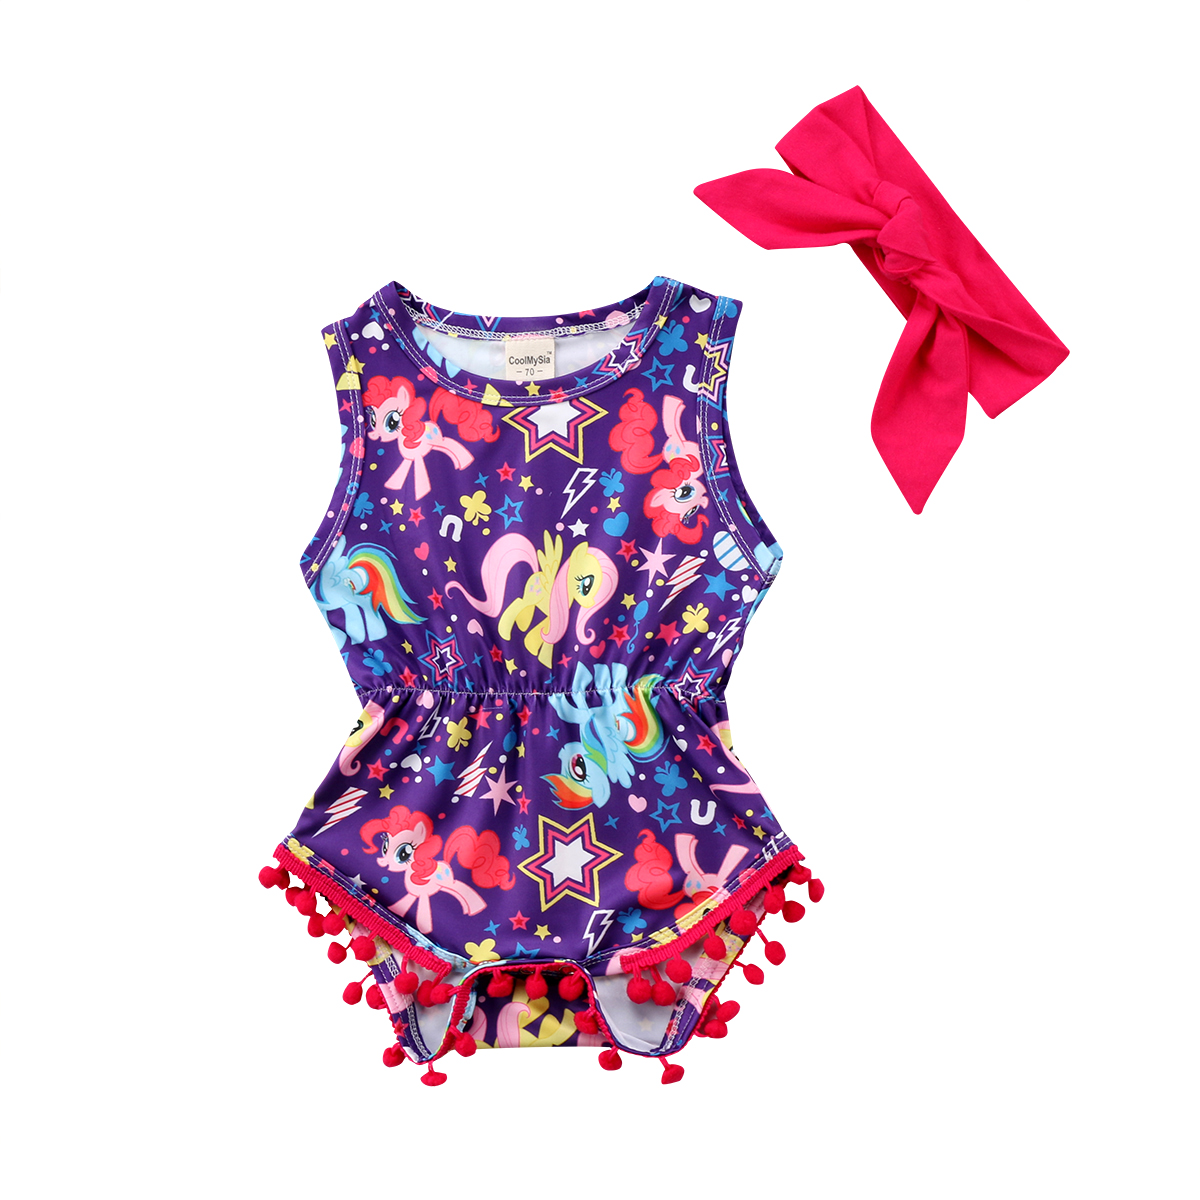 0-24M Soft cotton 2Pcs Newborn Baby Girl Unicorn Floral Sleeveless Romper Jumpsuit Outfits Clothes+Bow